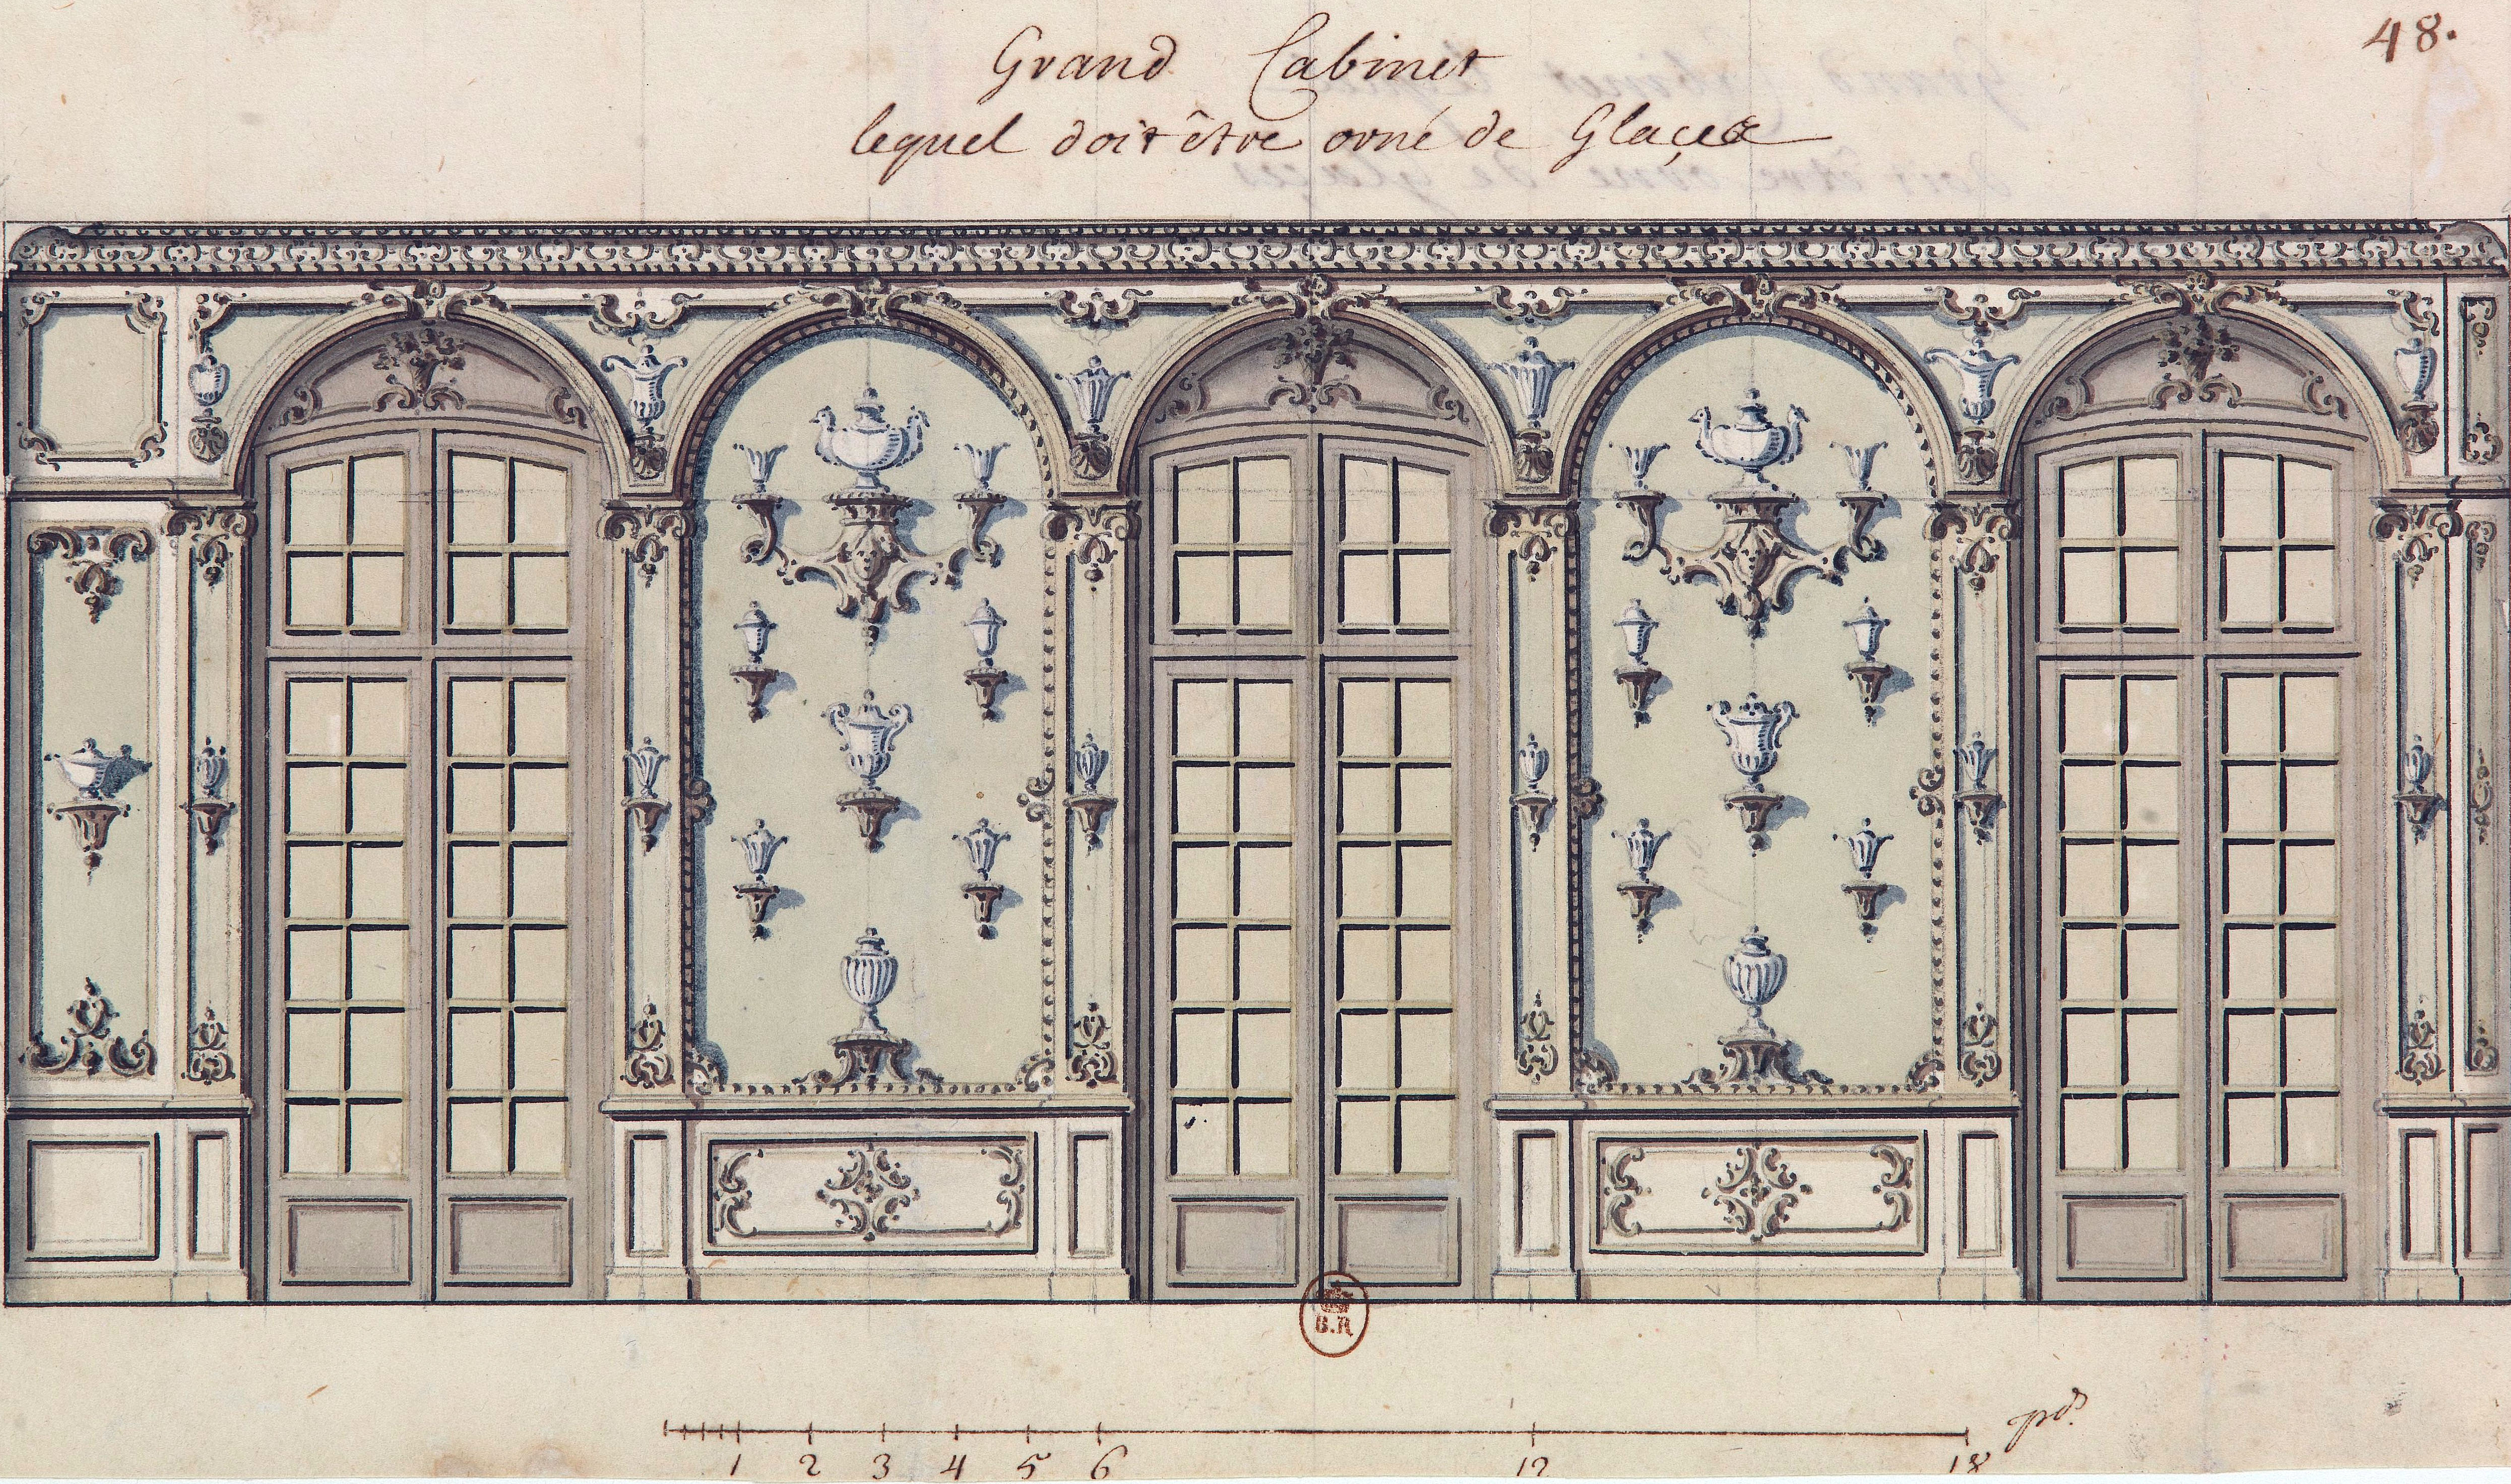 Tattoo Bonn File Design For The Grand Cabinet With Decorated Mirrors